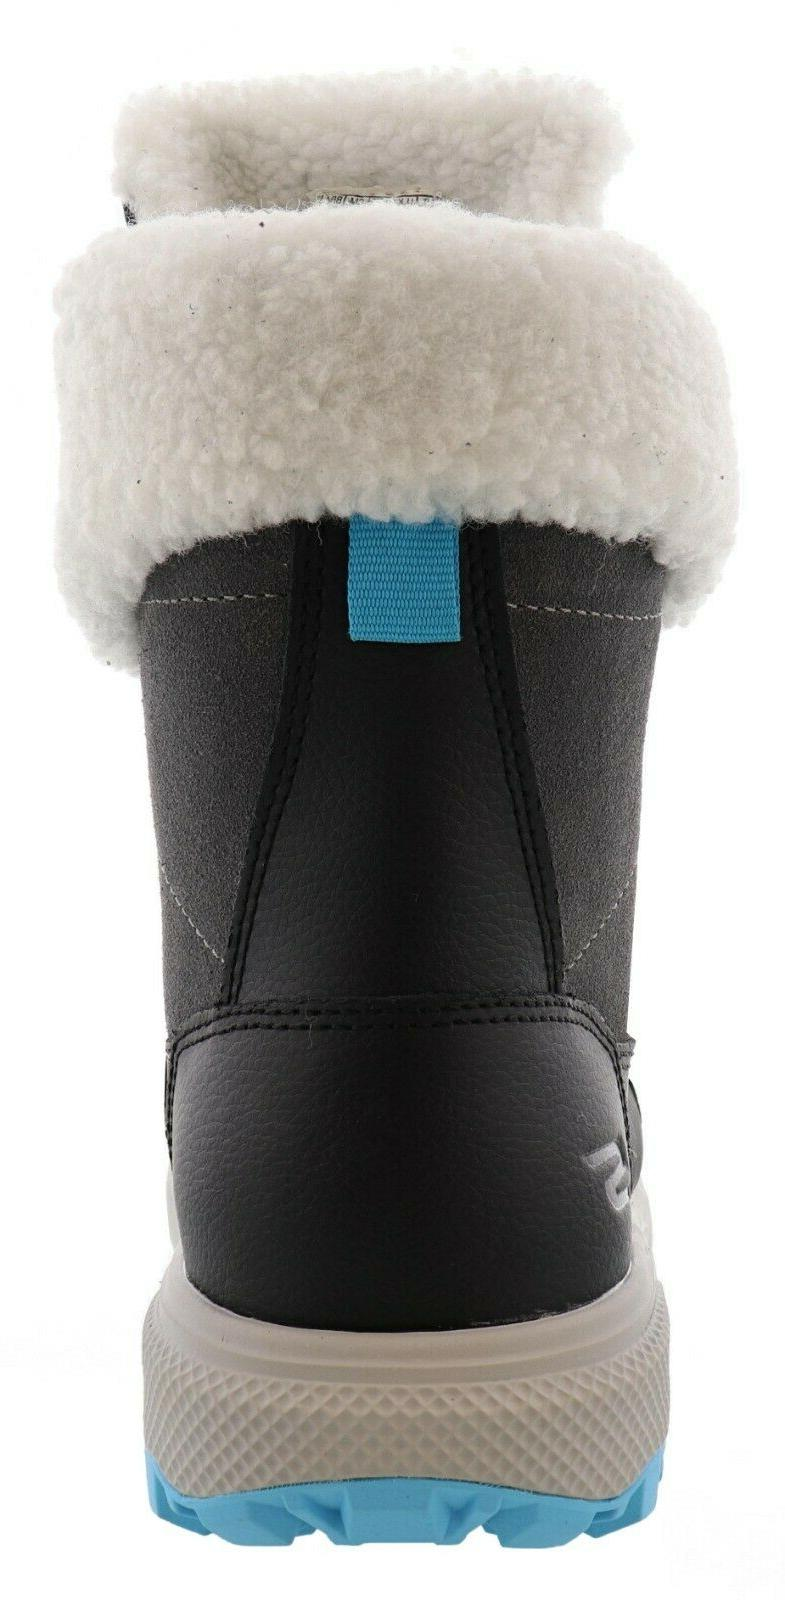 SKECHERS WOMEN'S ON THE GO OUTDOOR CAPPED BOOTS